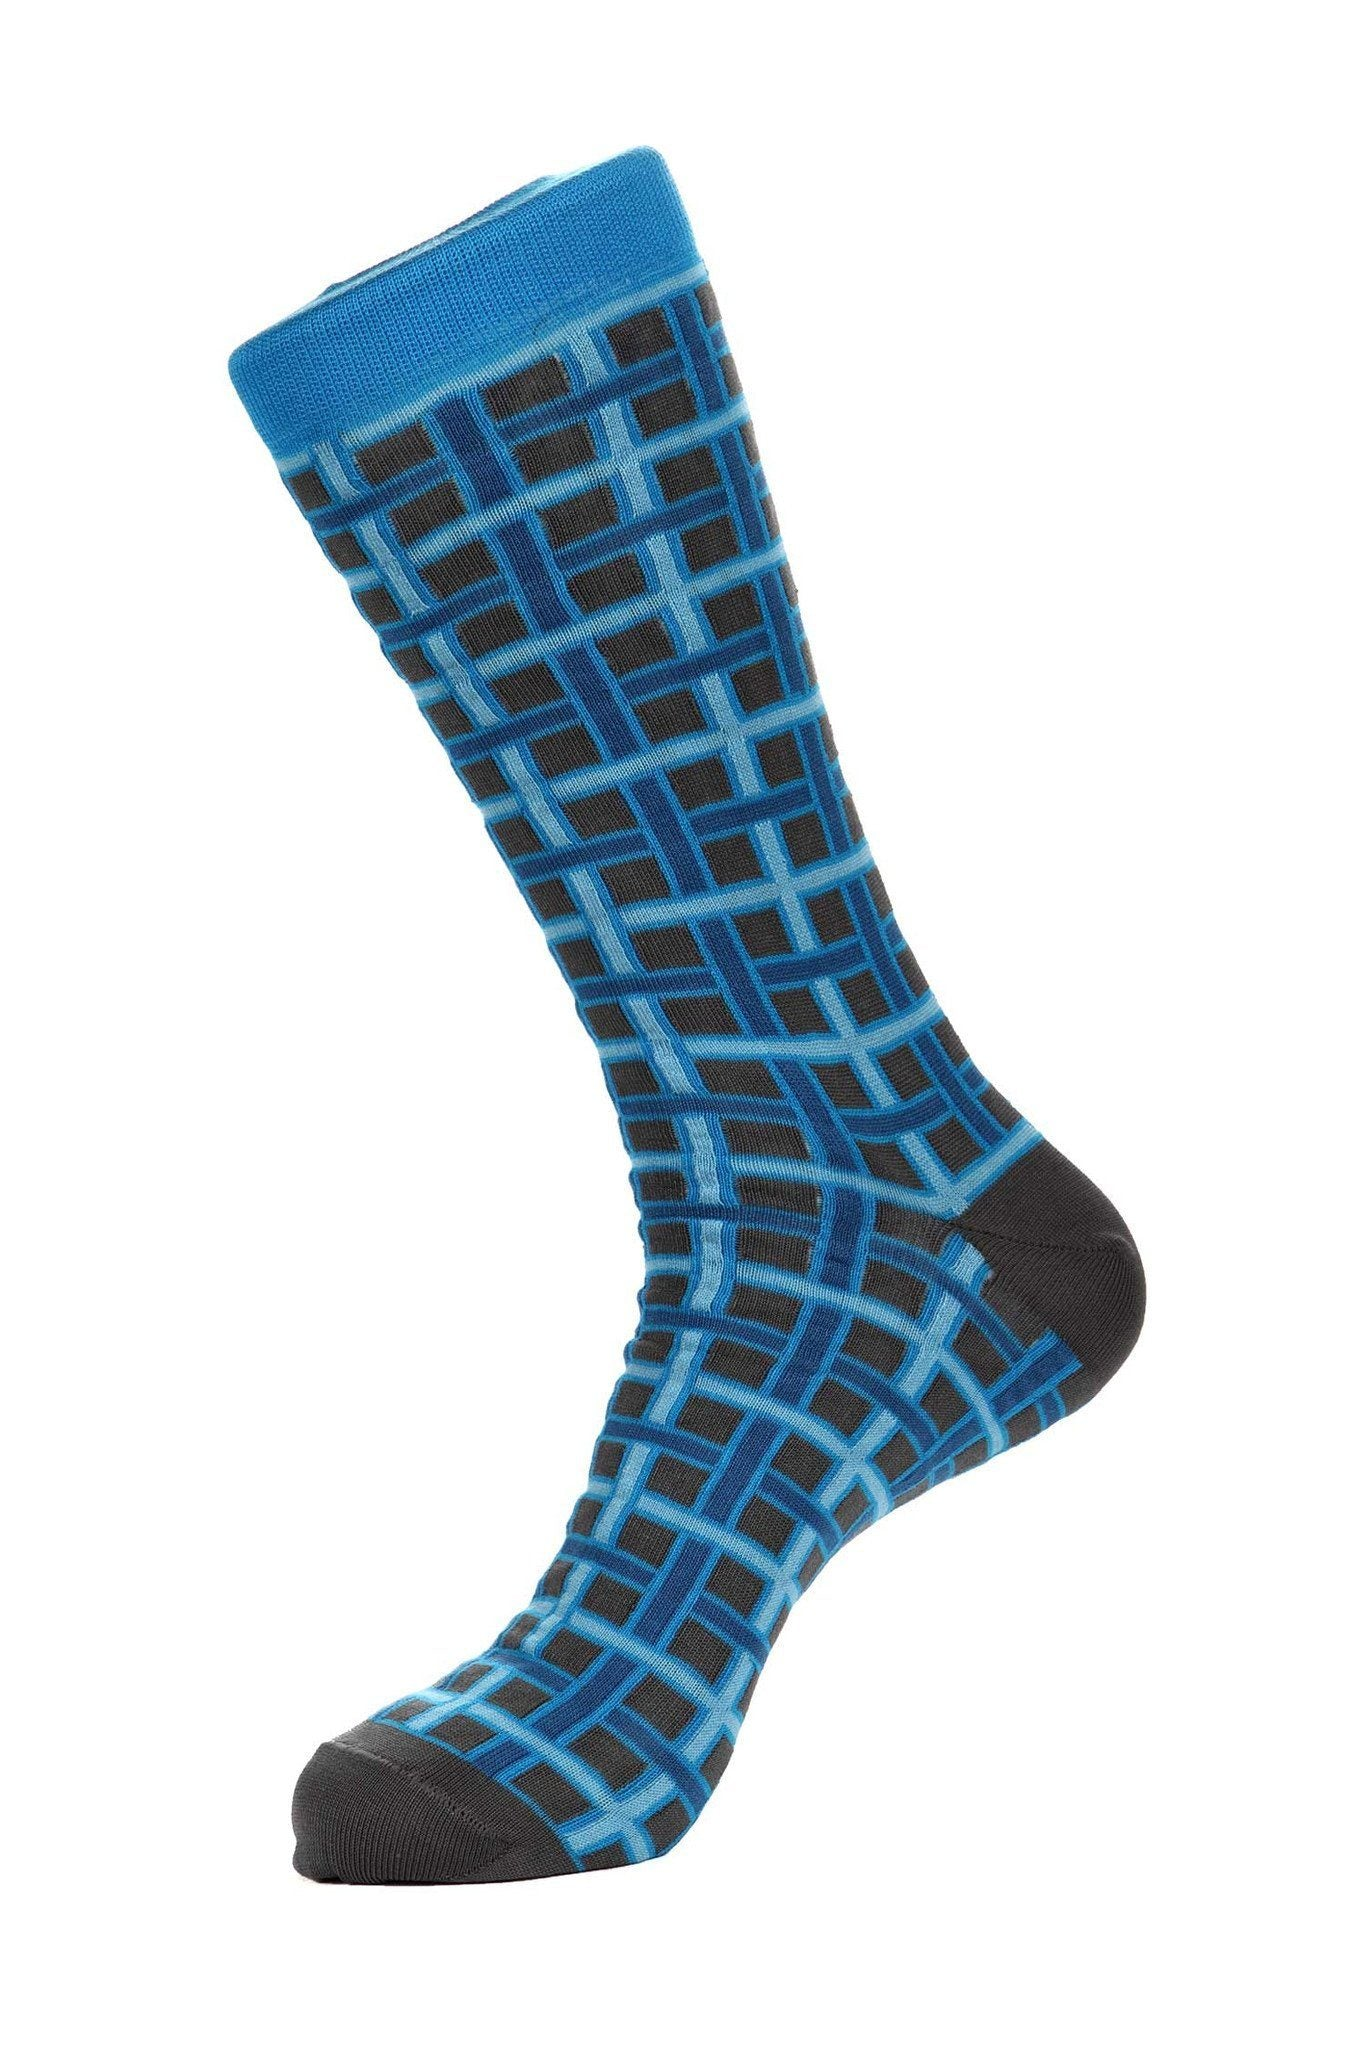 JL-11015-4,socks,Jared Lang, | GentRow.com